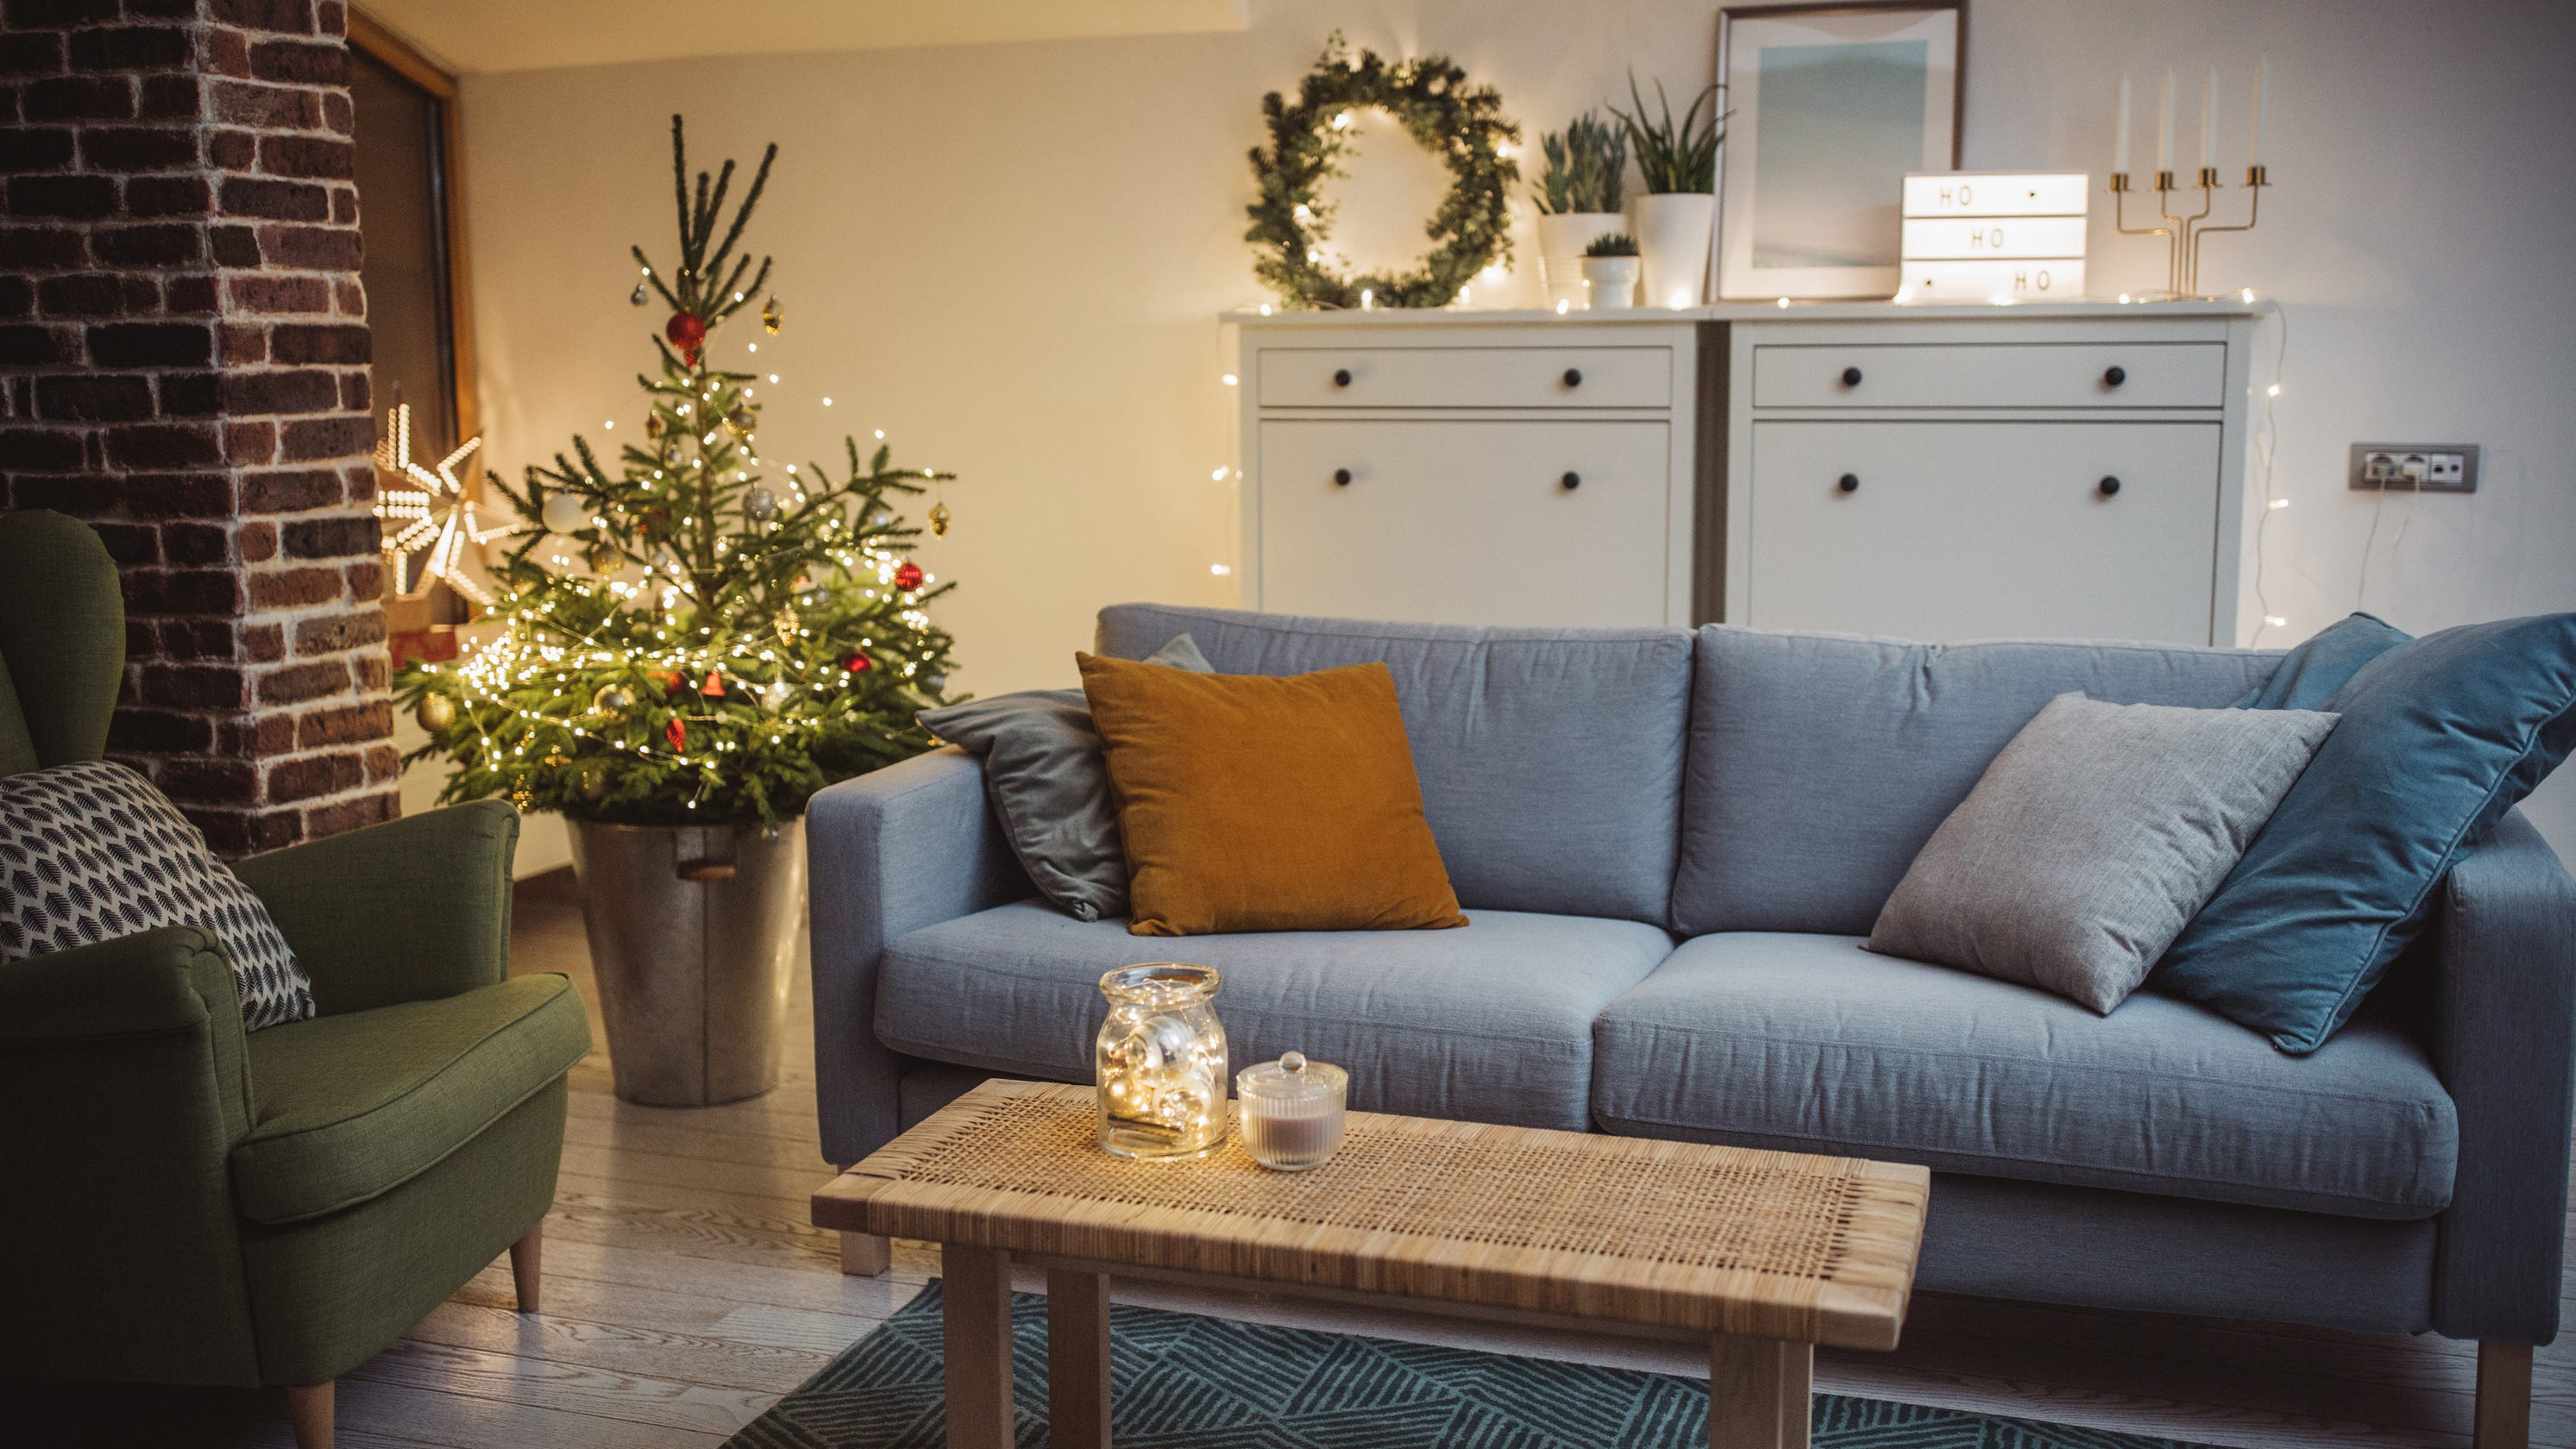 Black Friday 2020: The best furniture deals at Wayfair, Macy's and more